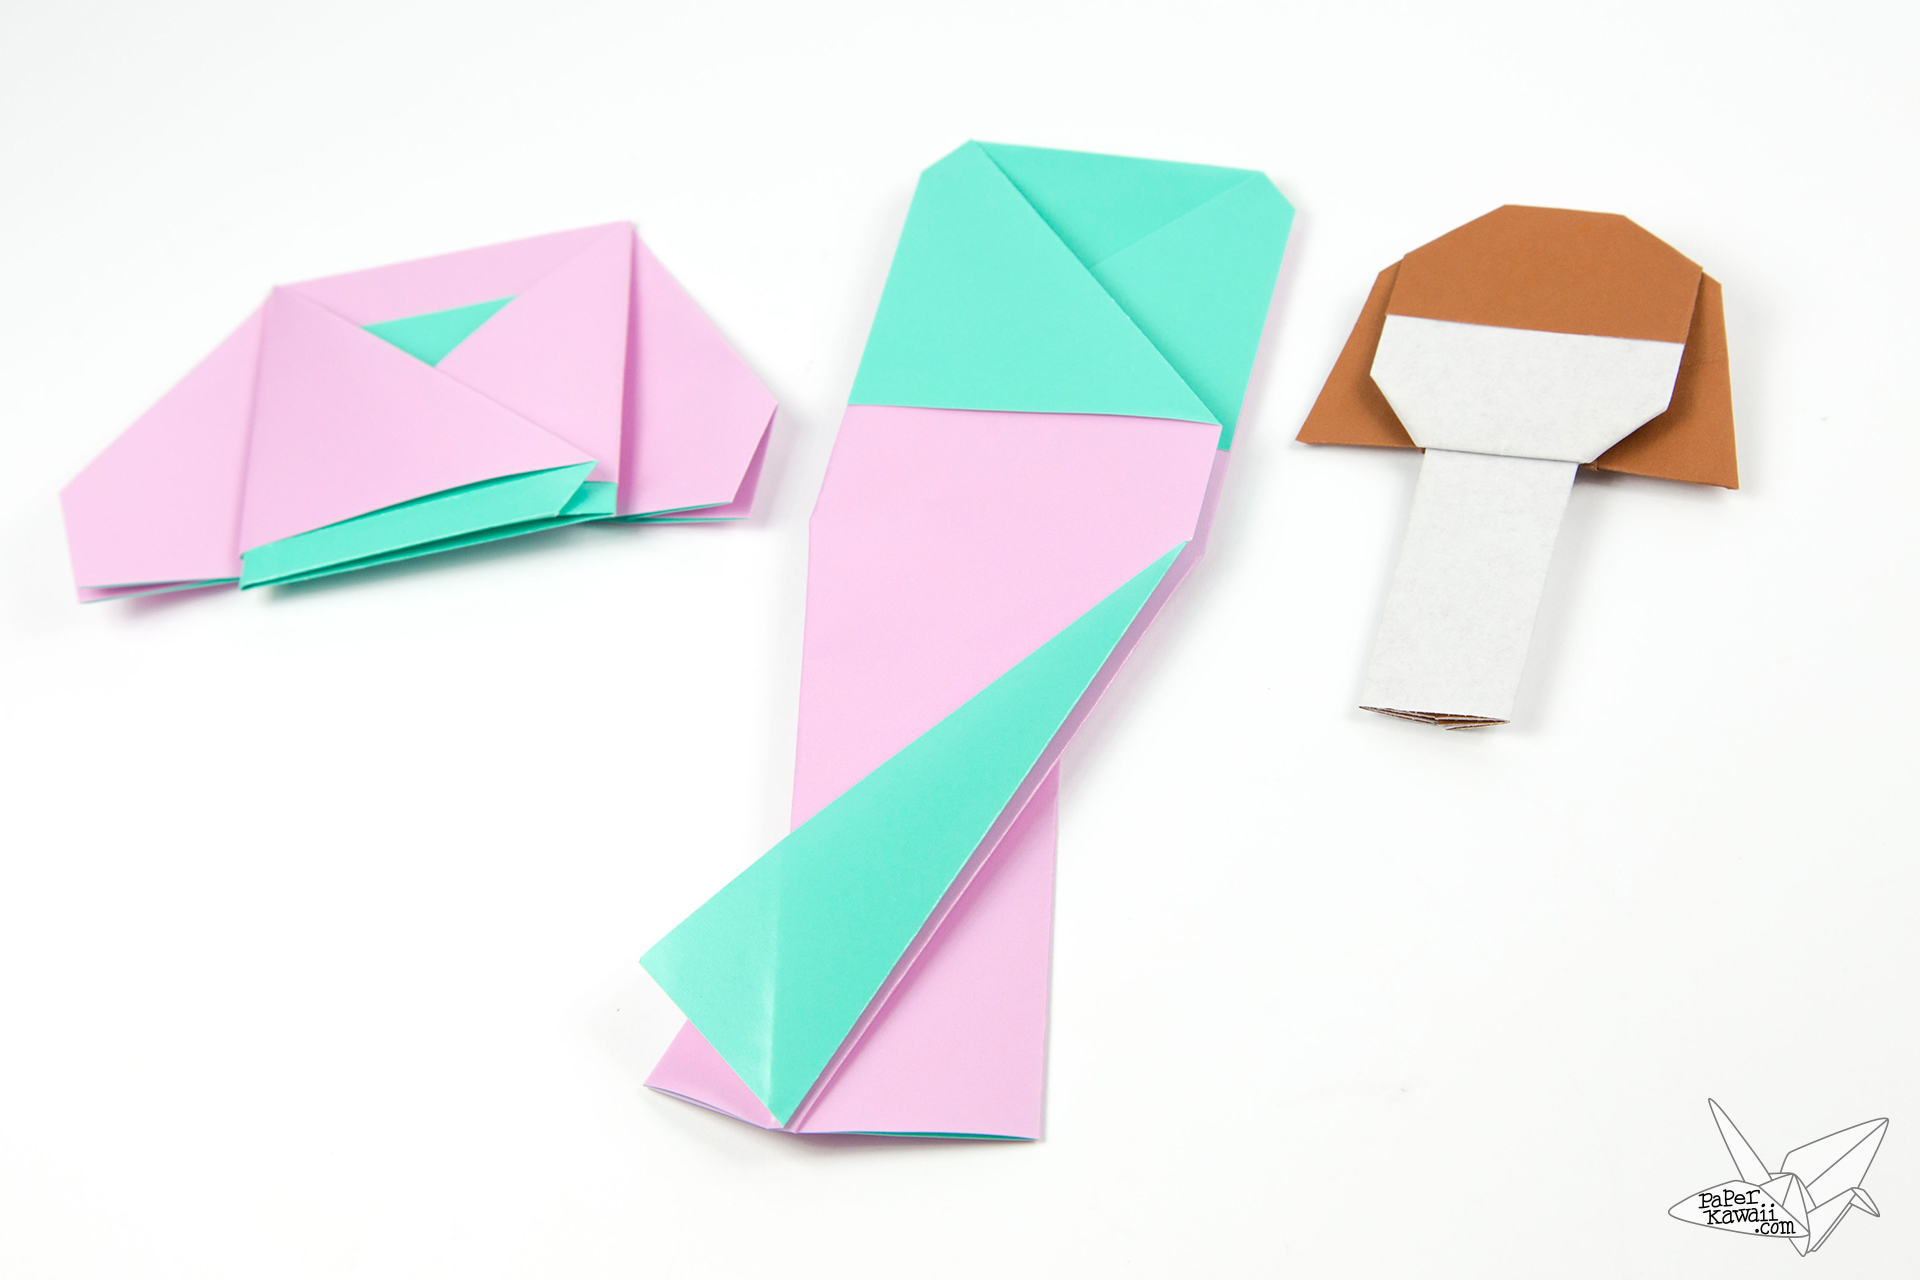 Origami Doll Tutorial - Paper Kawaii